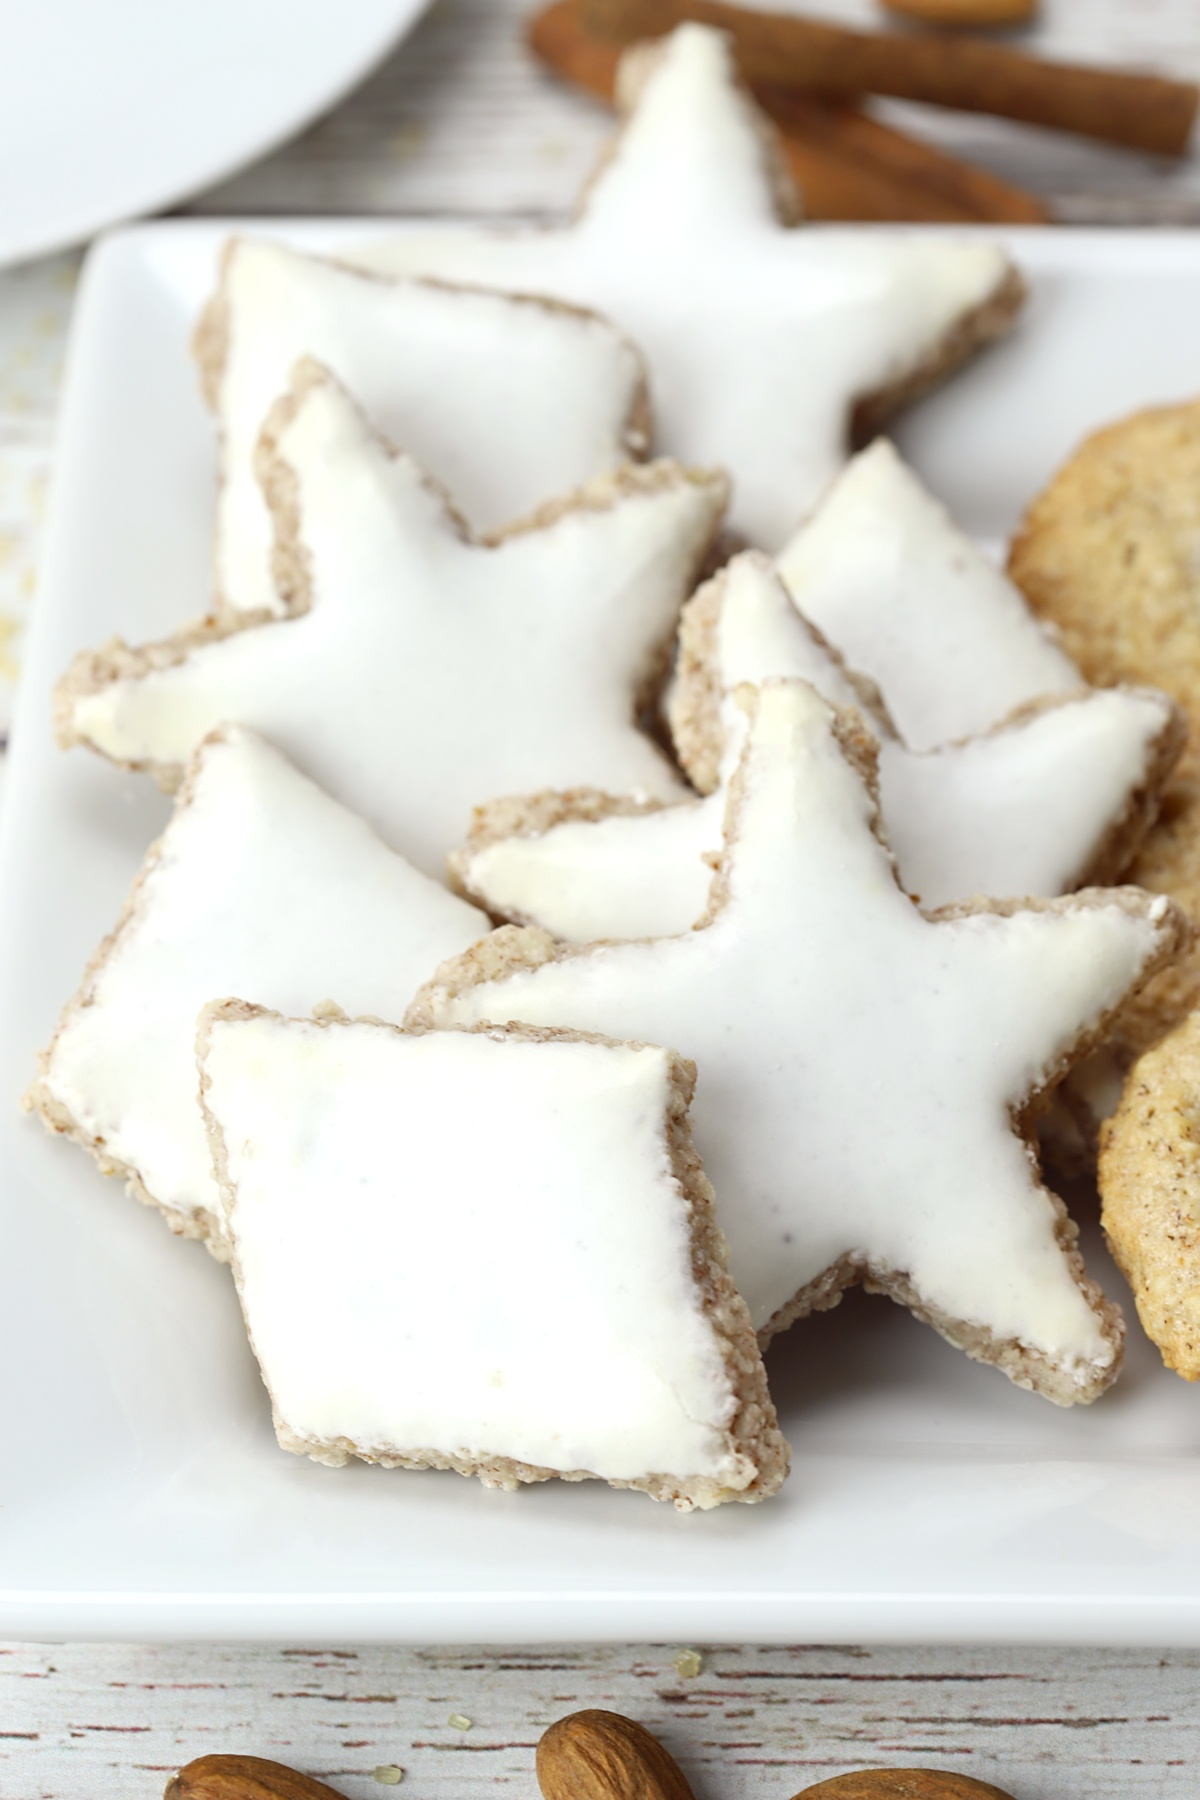 Zimtsterne star and diamond cookies on a serving plate.